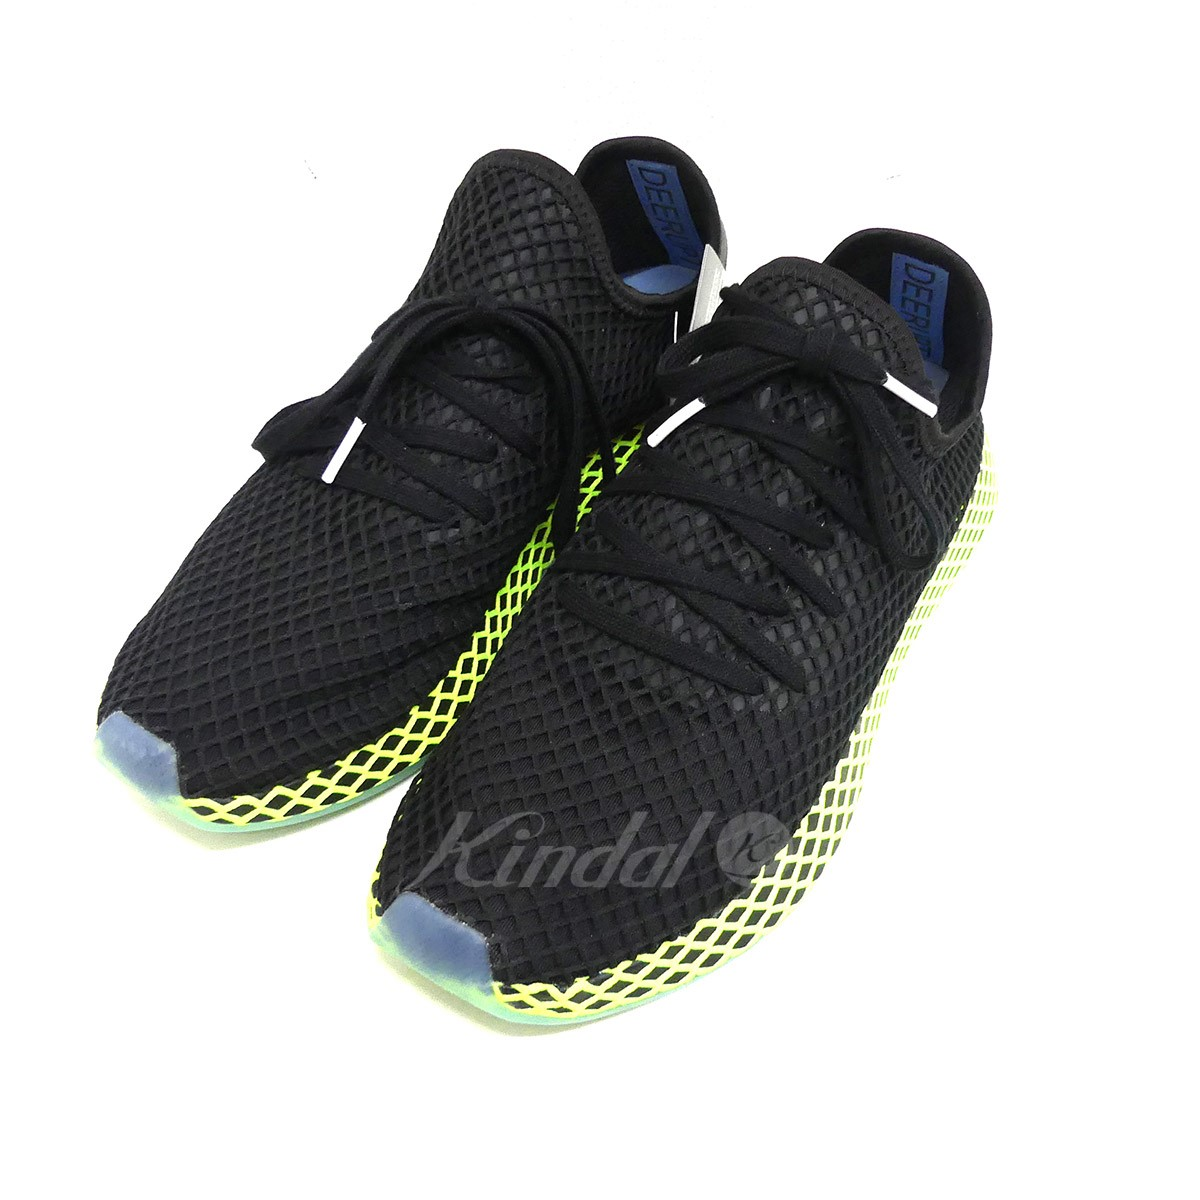 227b453000ae6 adidas DEERUPT RUNNER B41755 low-frequency cut sneakers black X yellow size   US 11 1 2 (Adidas)